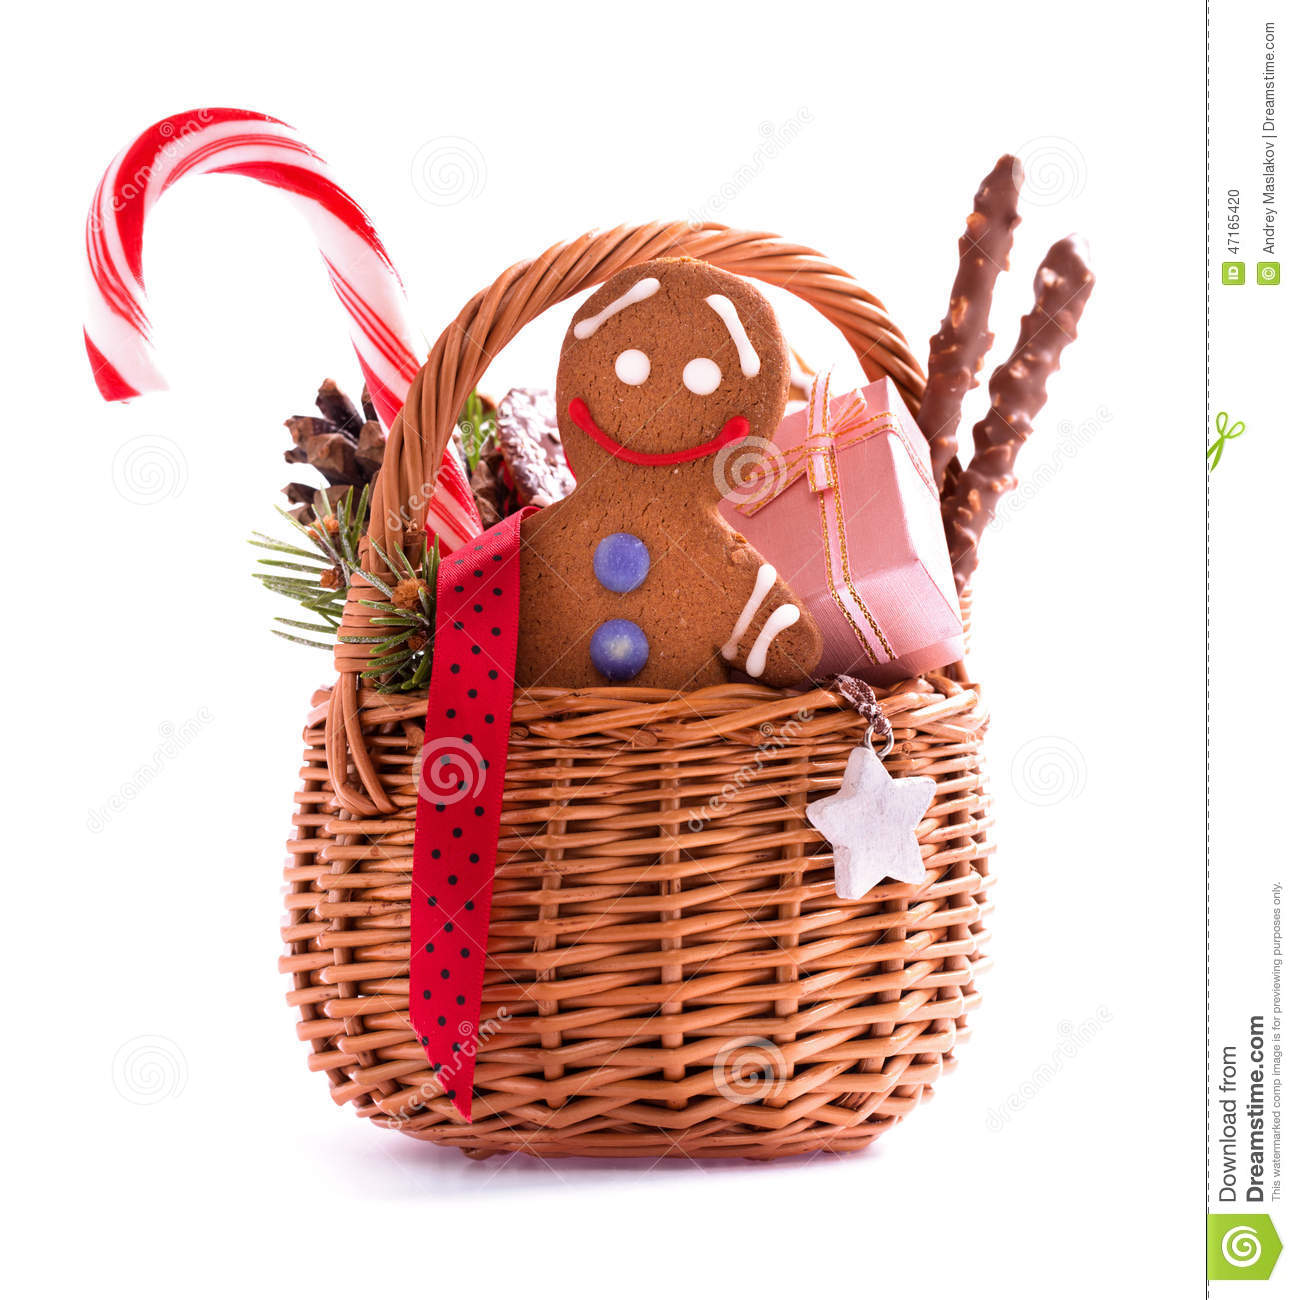 Christmas gift basket with treats and gingerbread man isolated